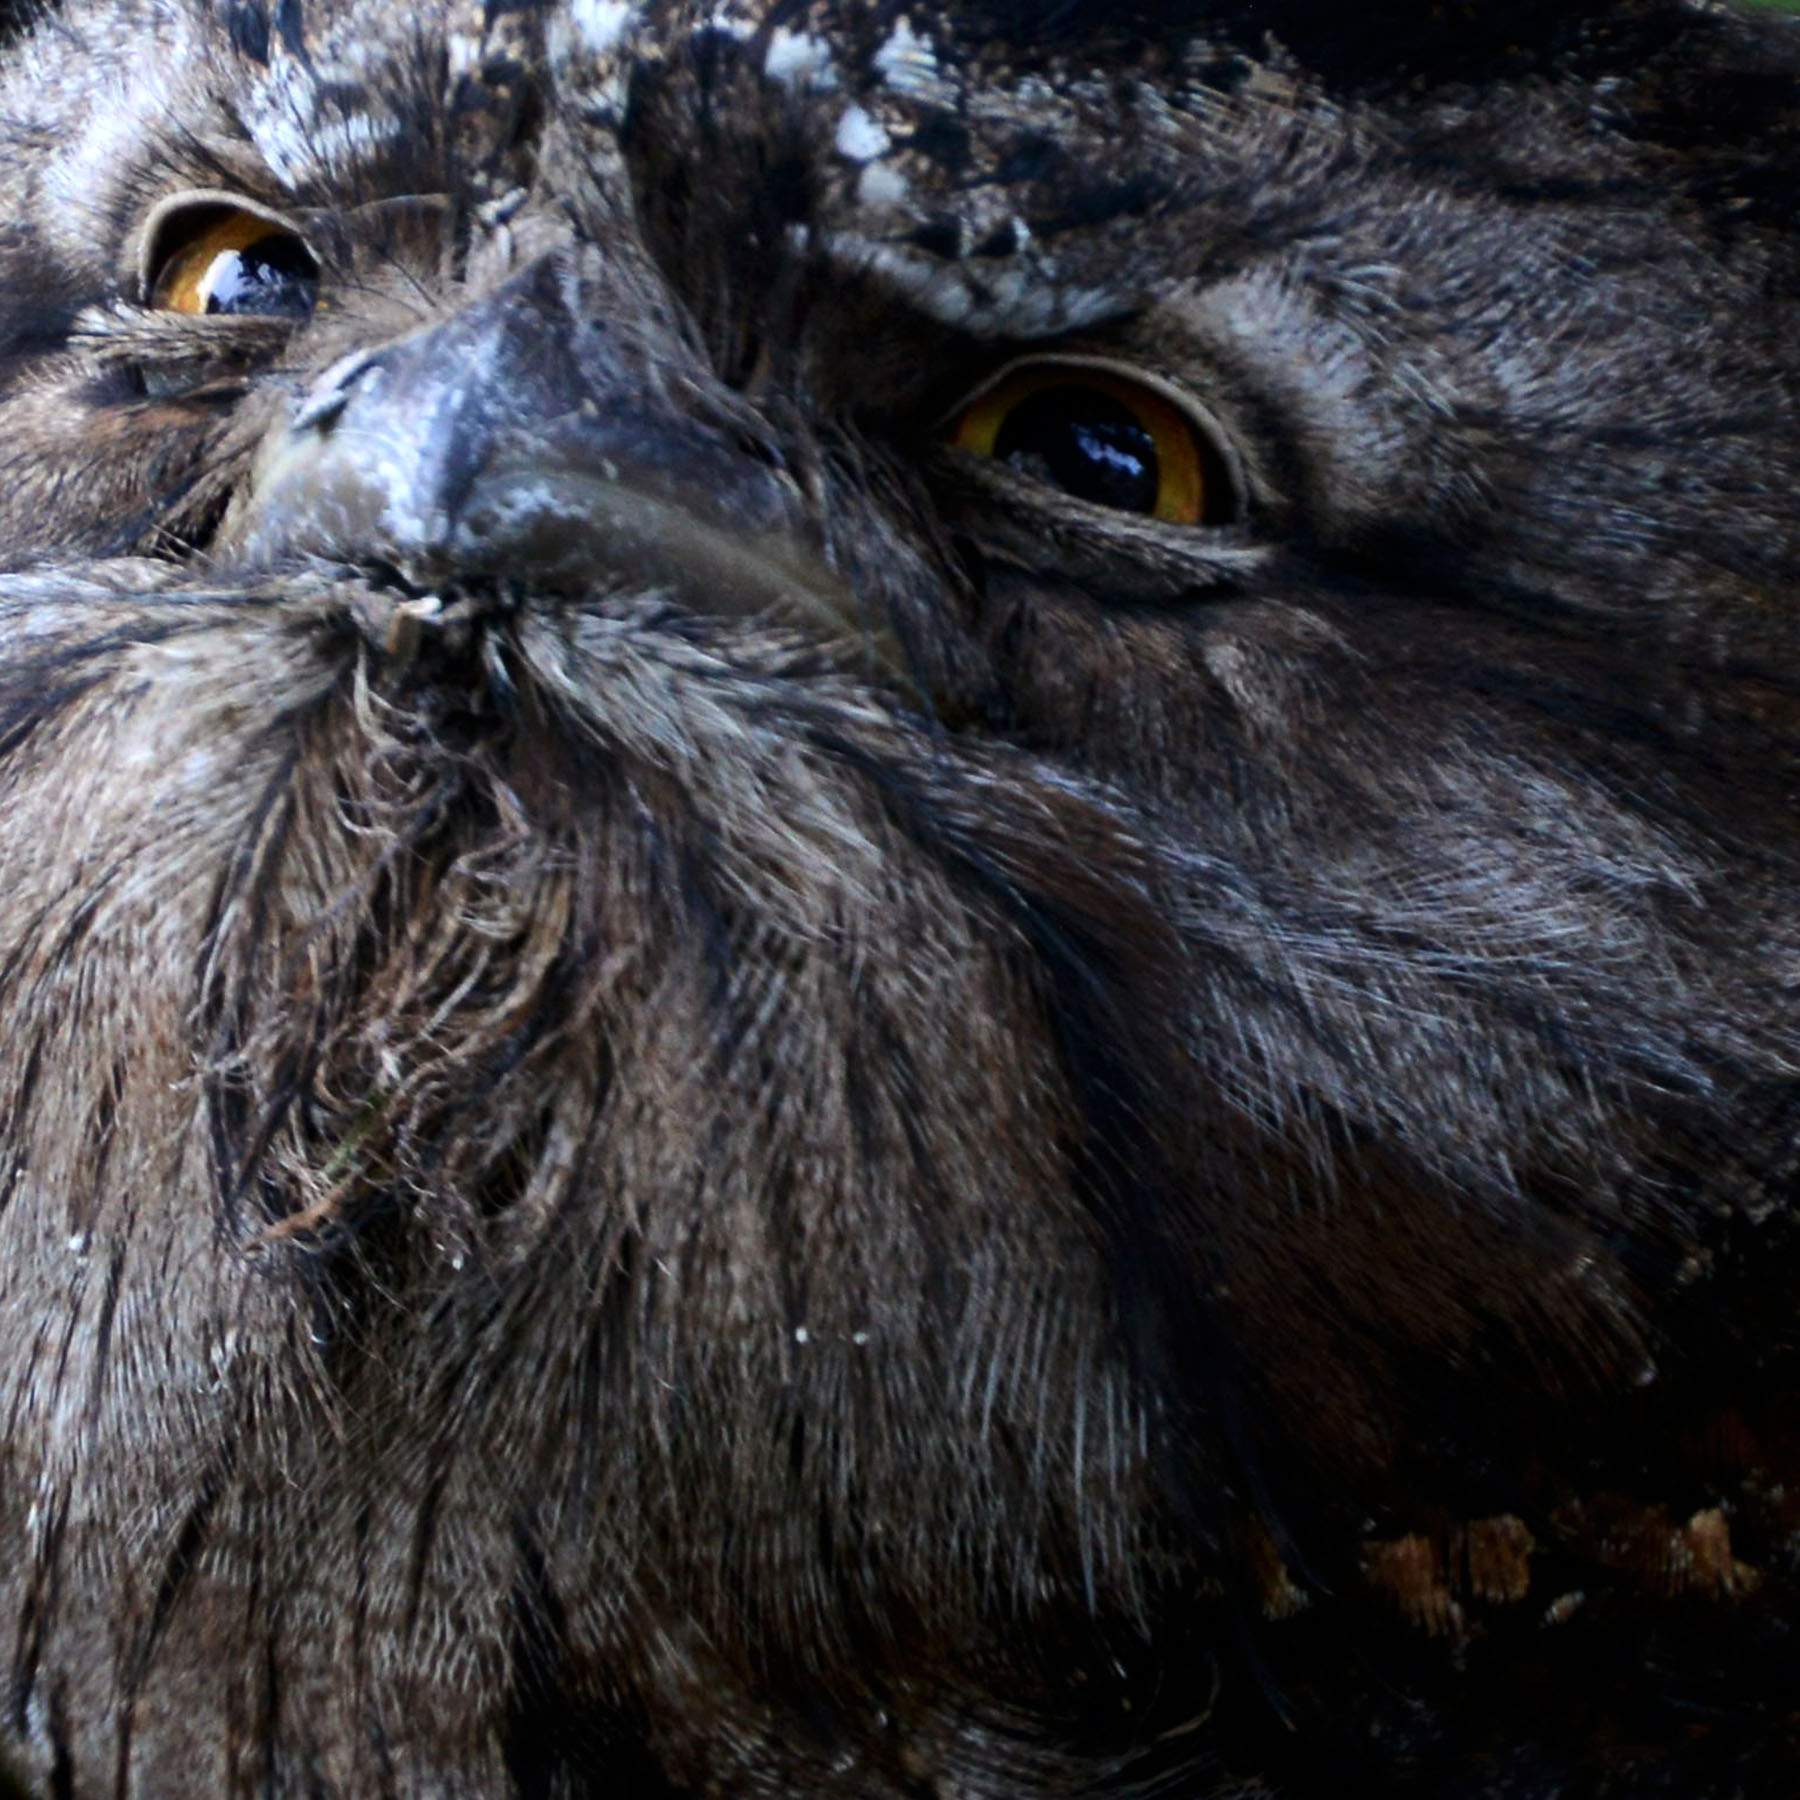 Karen_Burgess_Encounter_ Tawnie Frogmouth_3.jpg